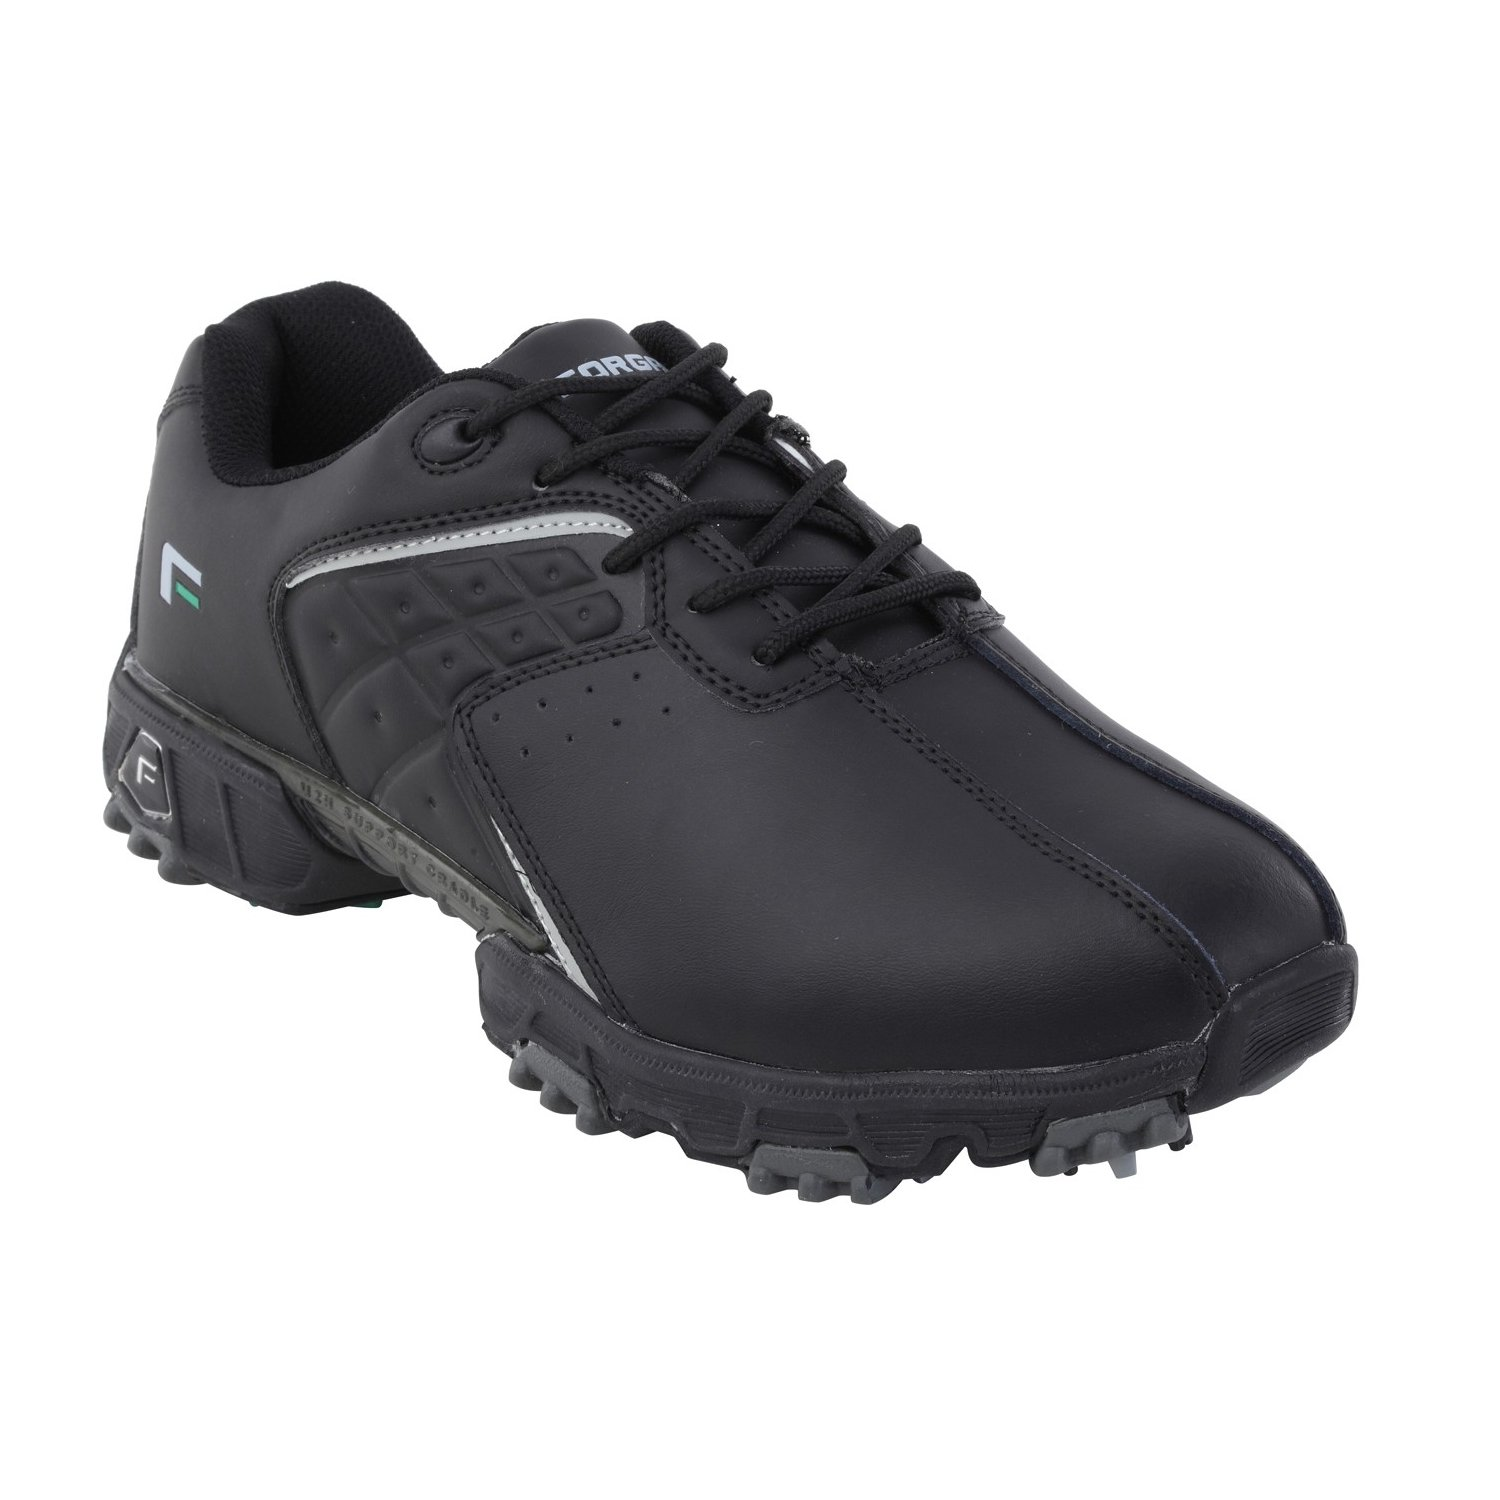 Forgan Golf V3 Leather Golf Shoes